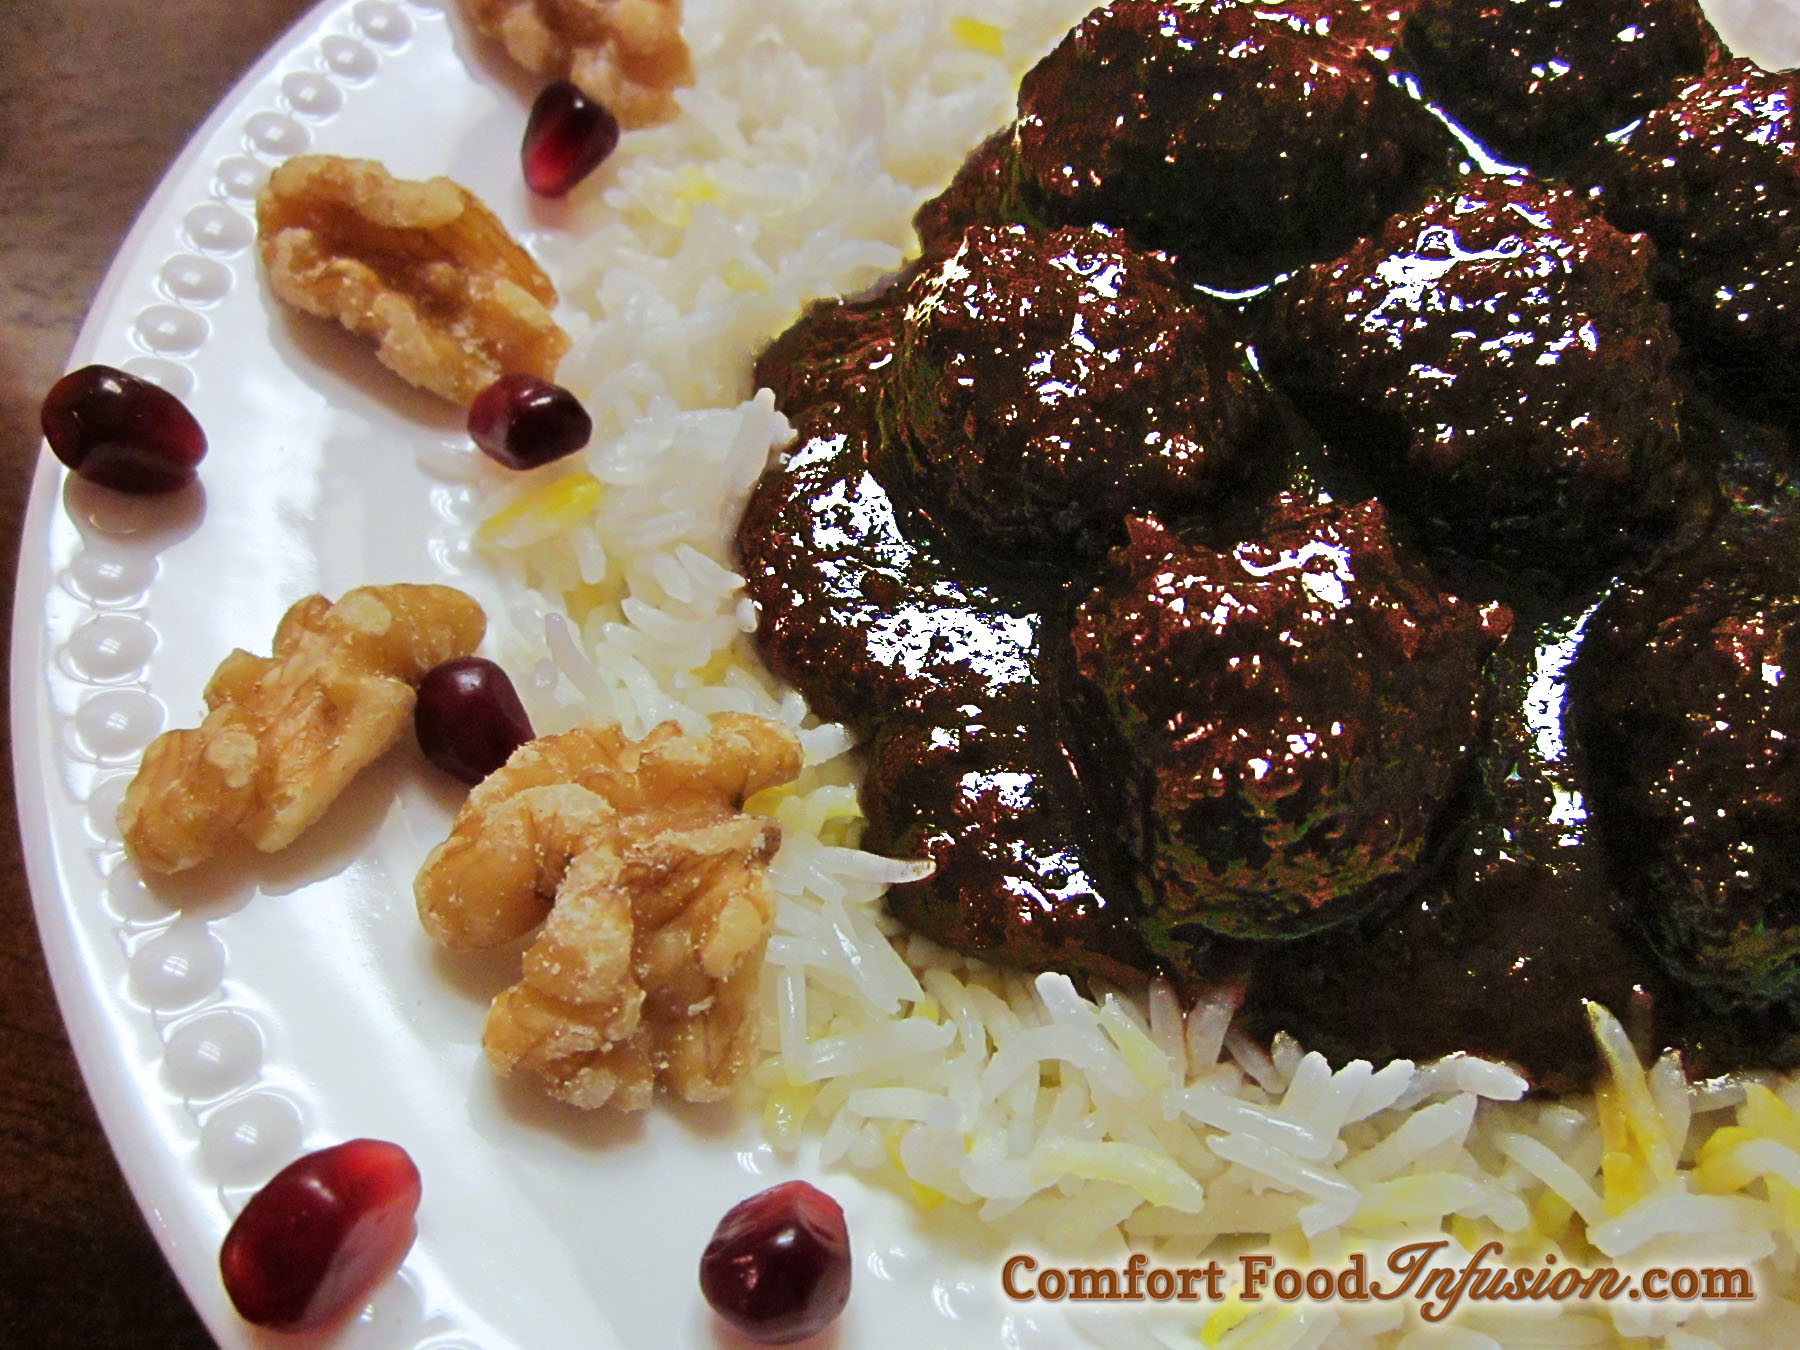 Pomegranate Walnut and Meatball Stew